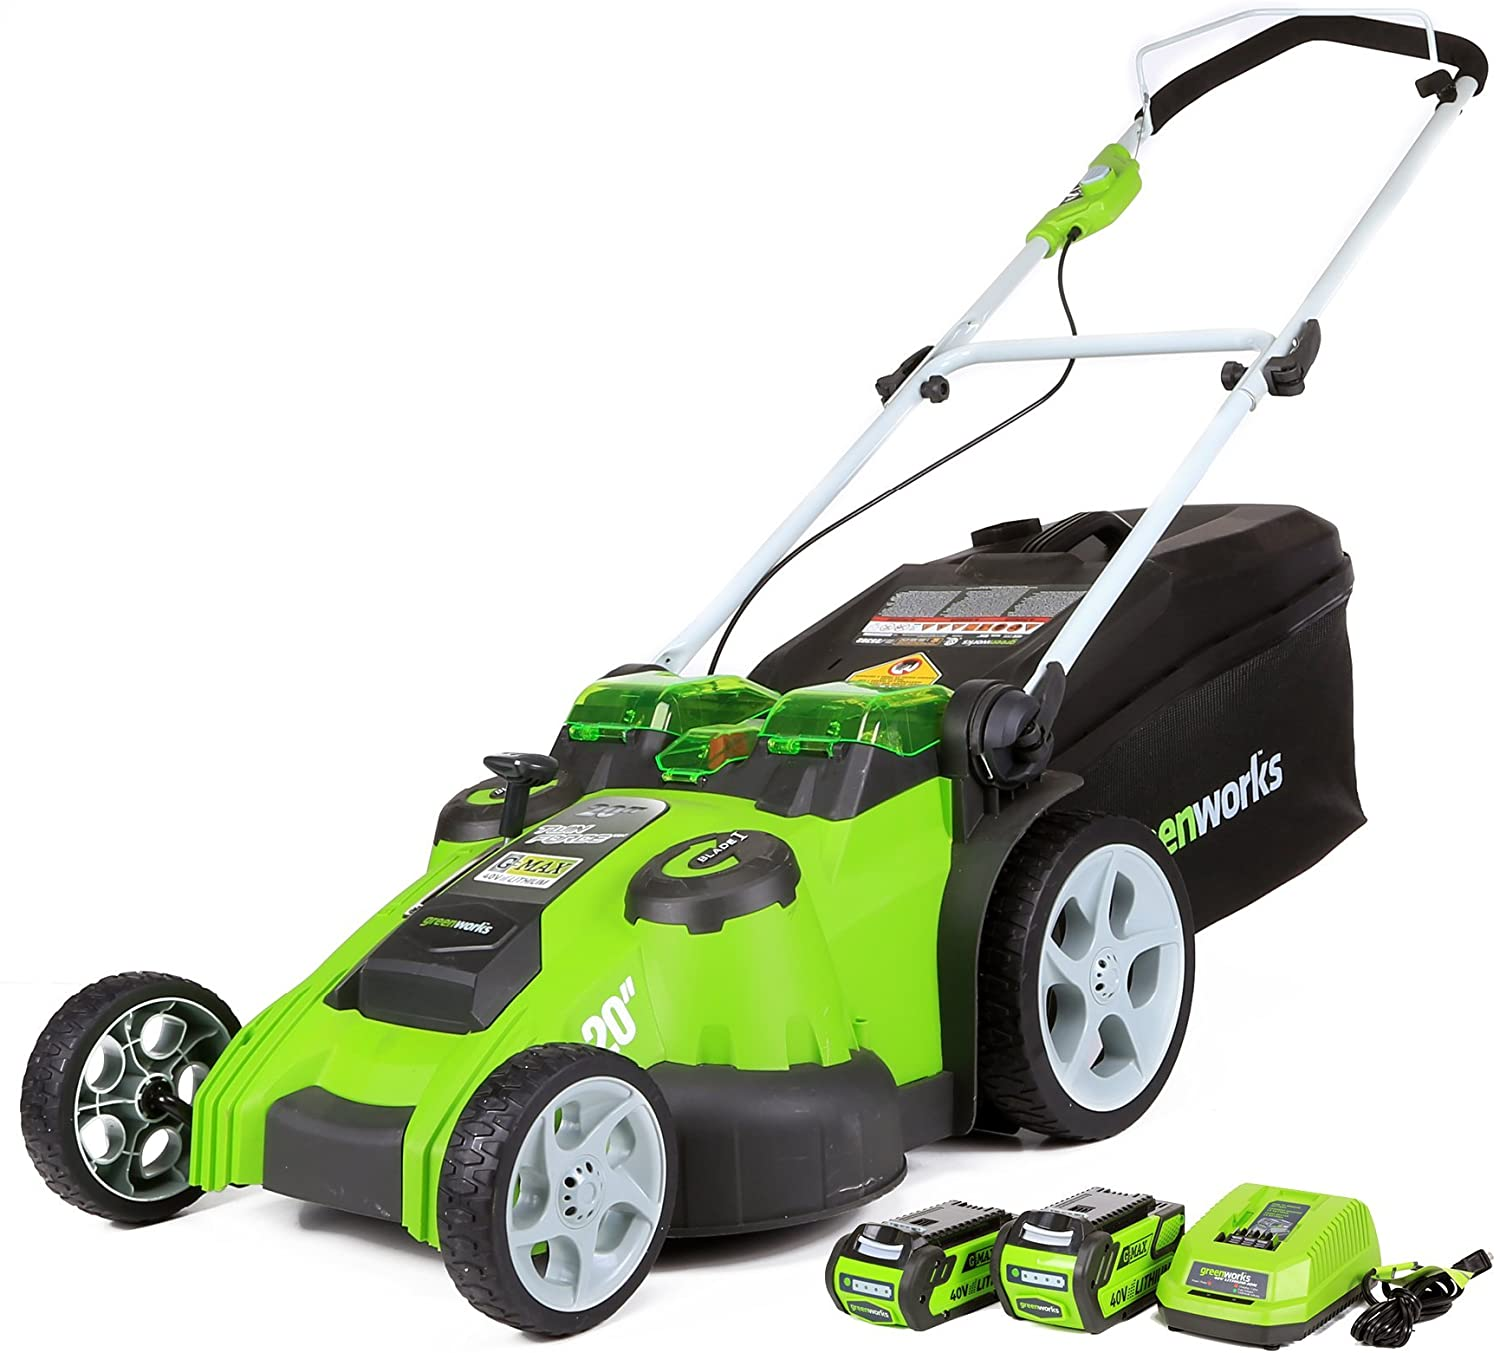 Greenworks 40V 20 Inch Cordless Twin Force Lawn Mower